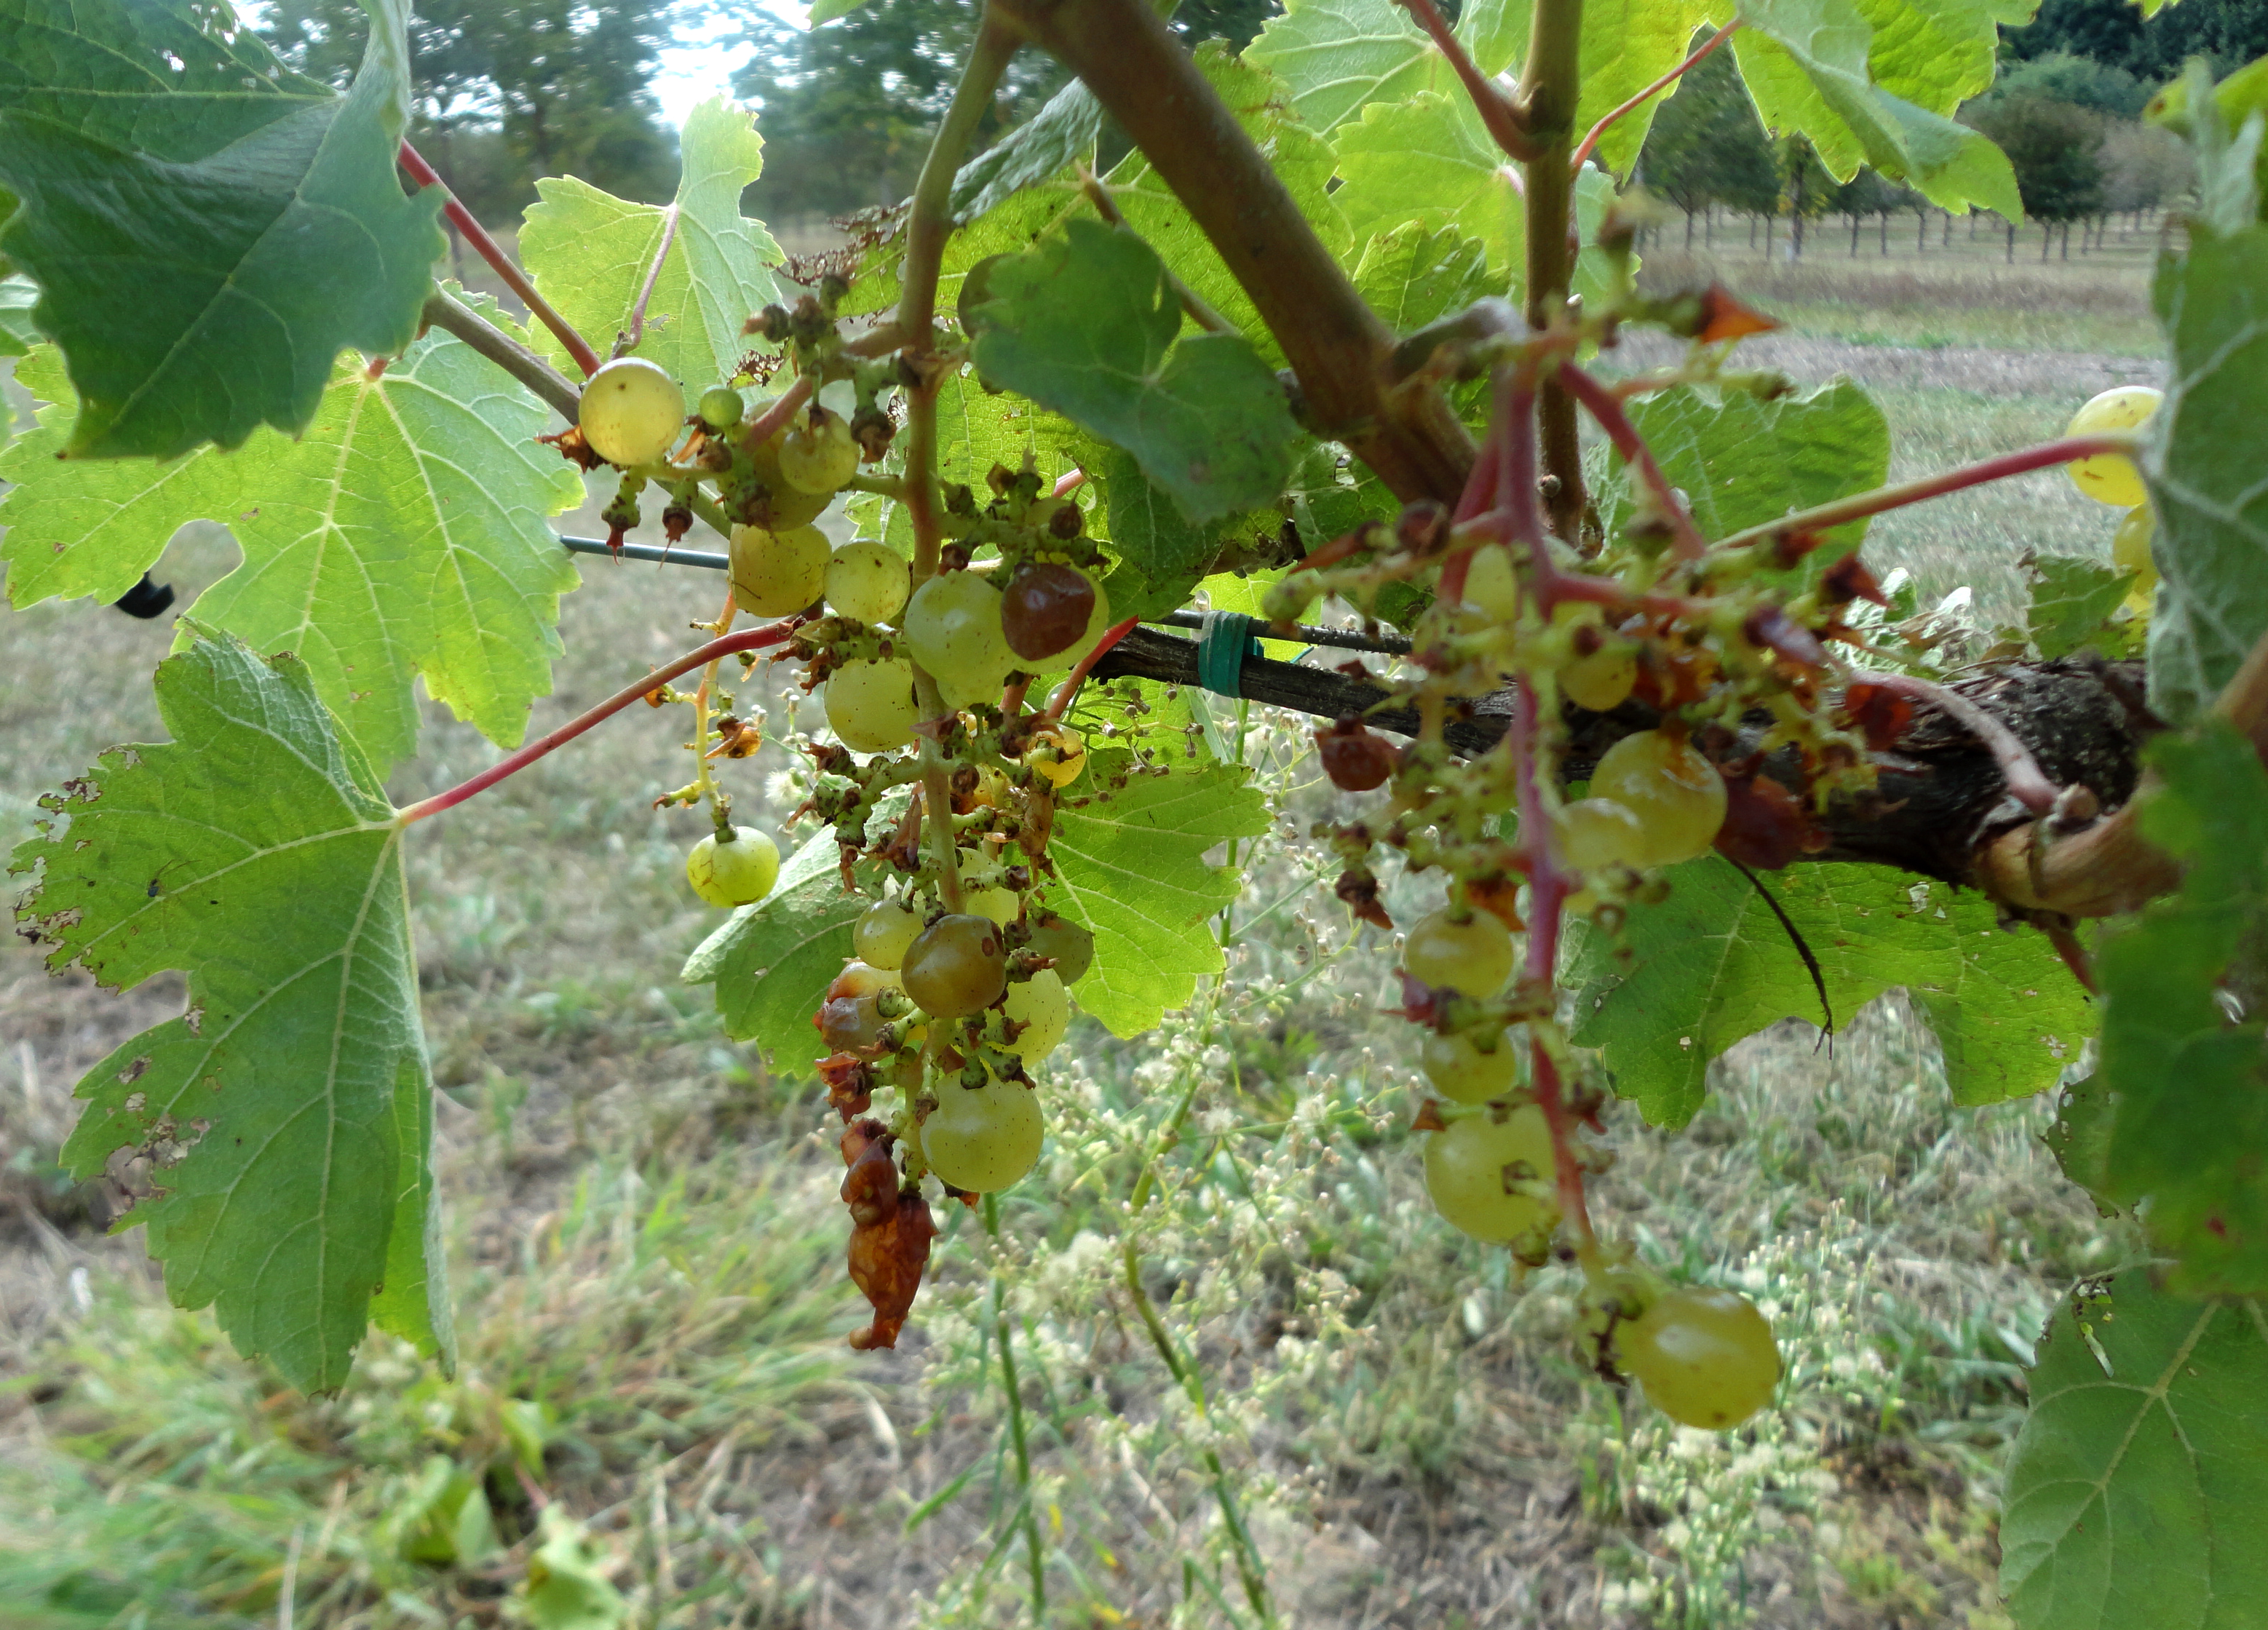 Bird damage to white grape cultivars